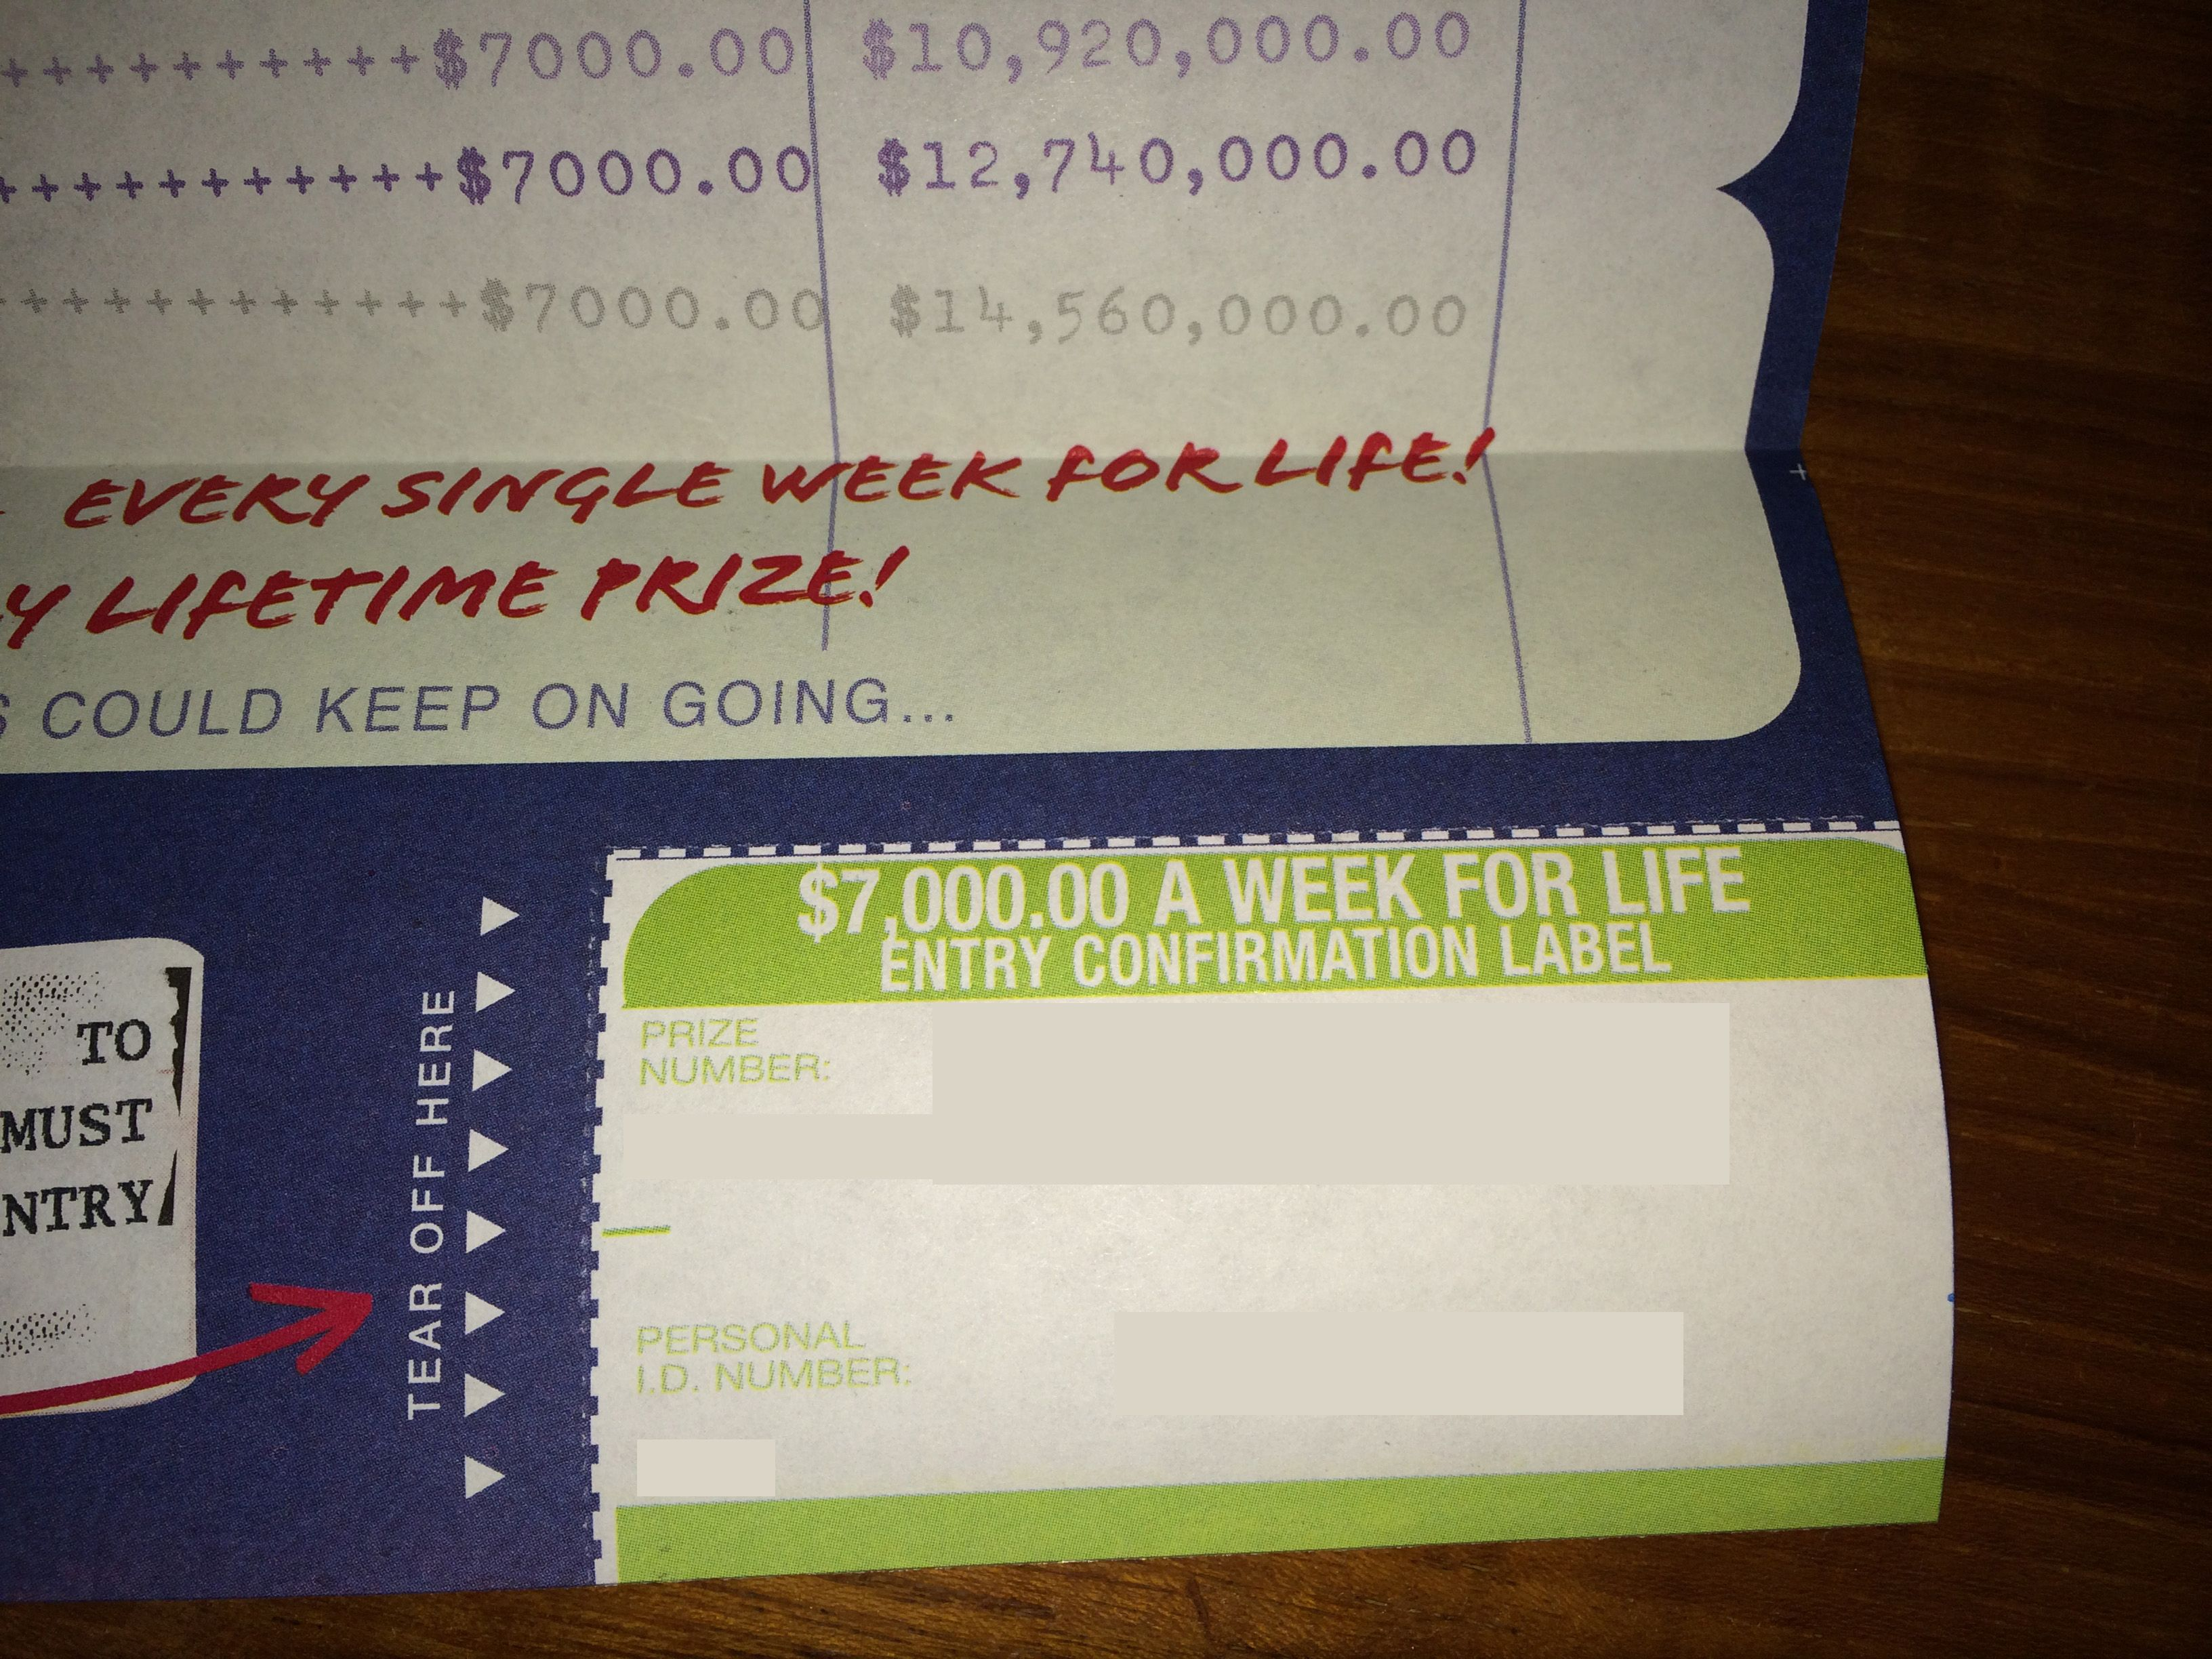 Publishers Clearing House Mailing Address